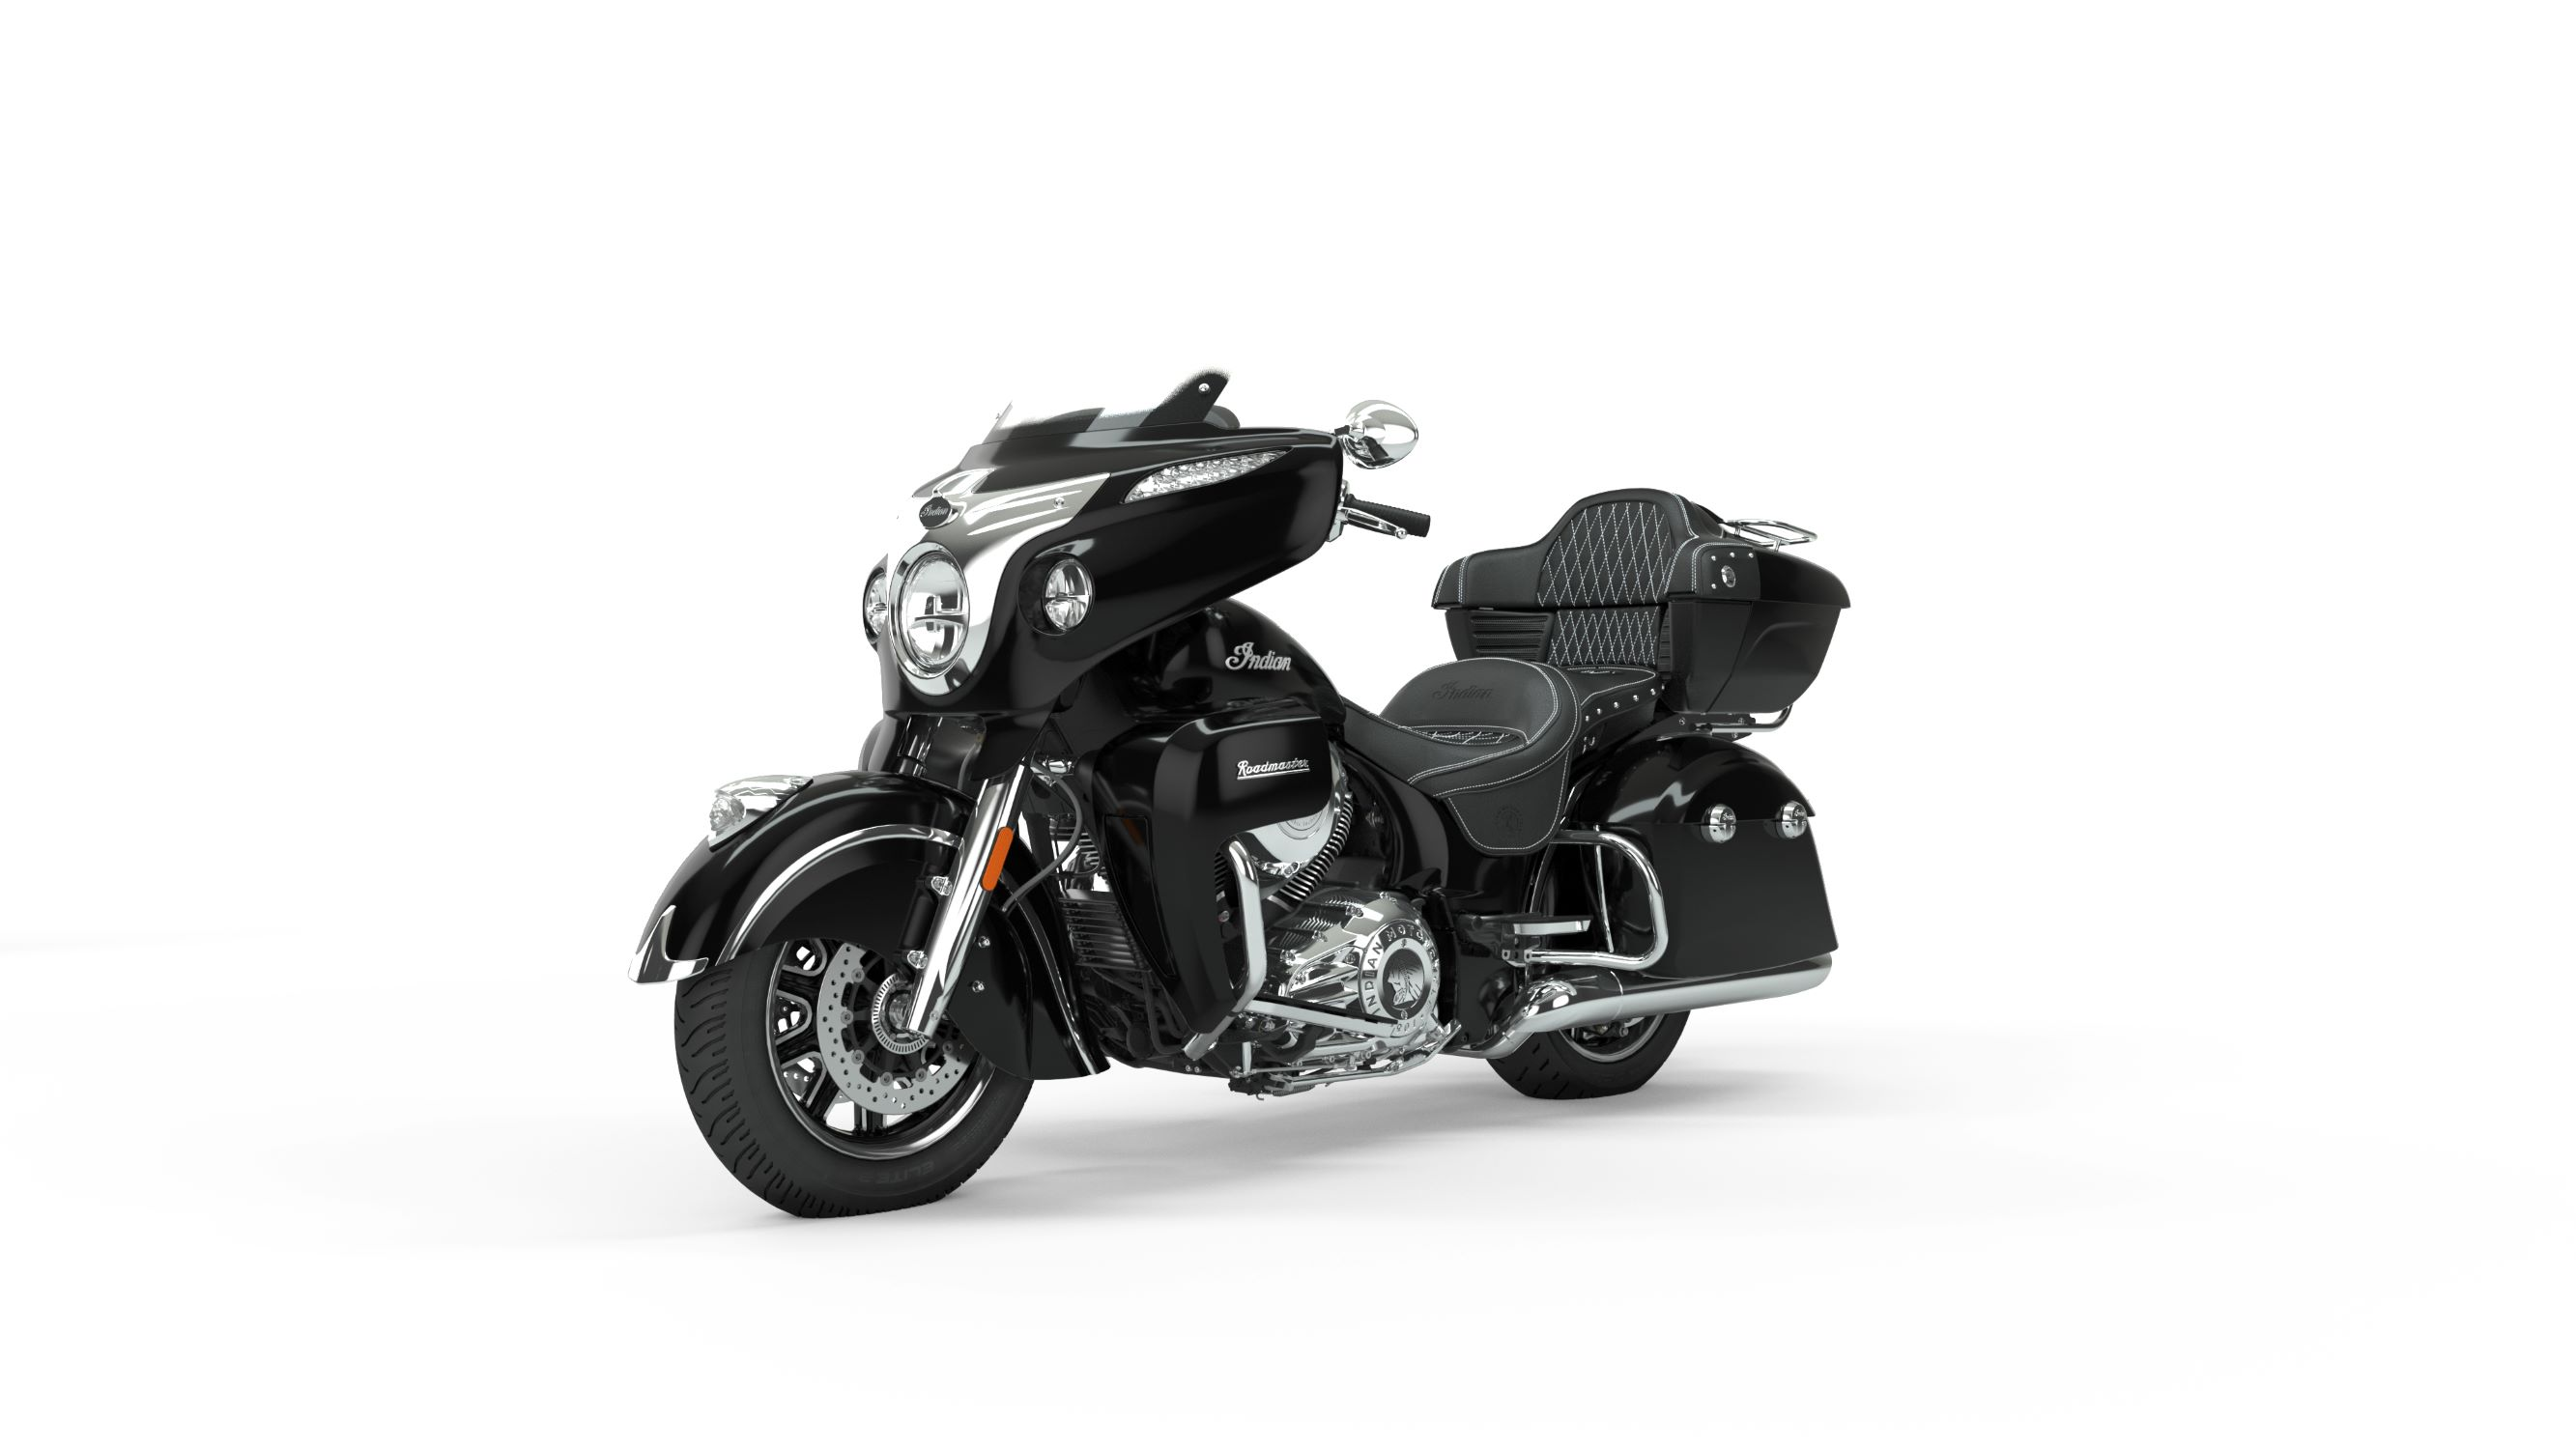 2019 Roadmaster Thunder Black Front Left 3Q